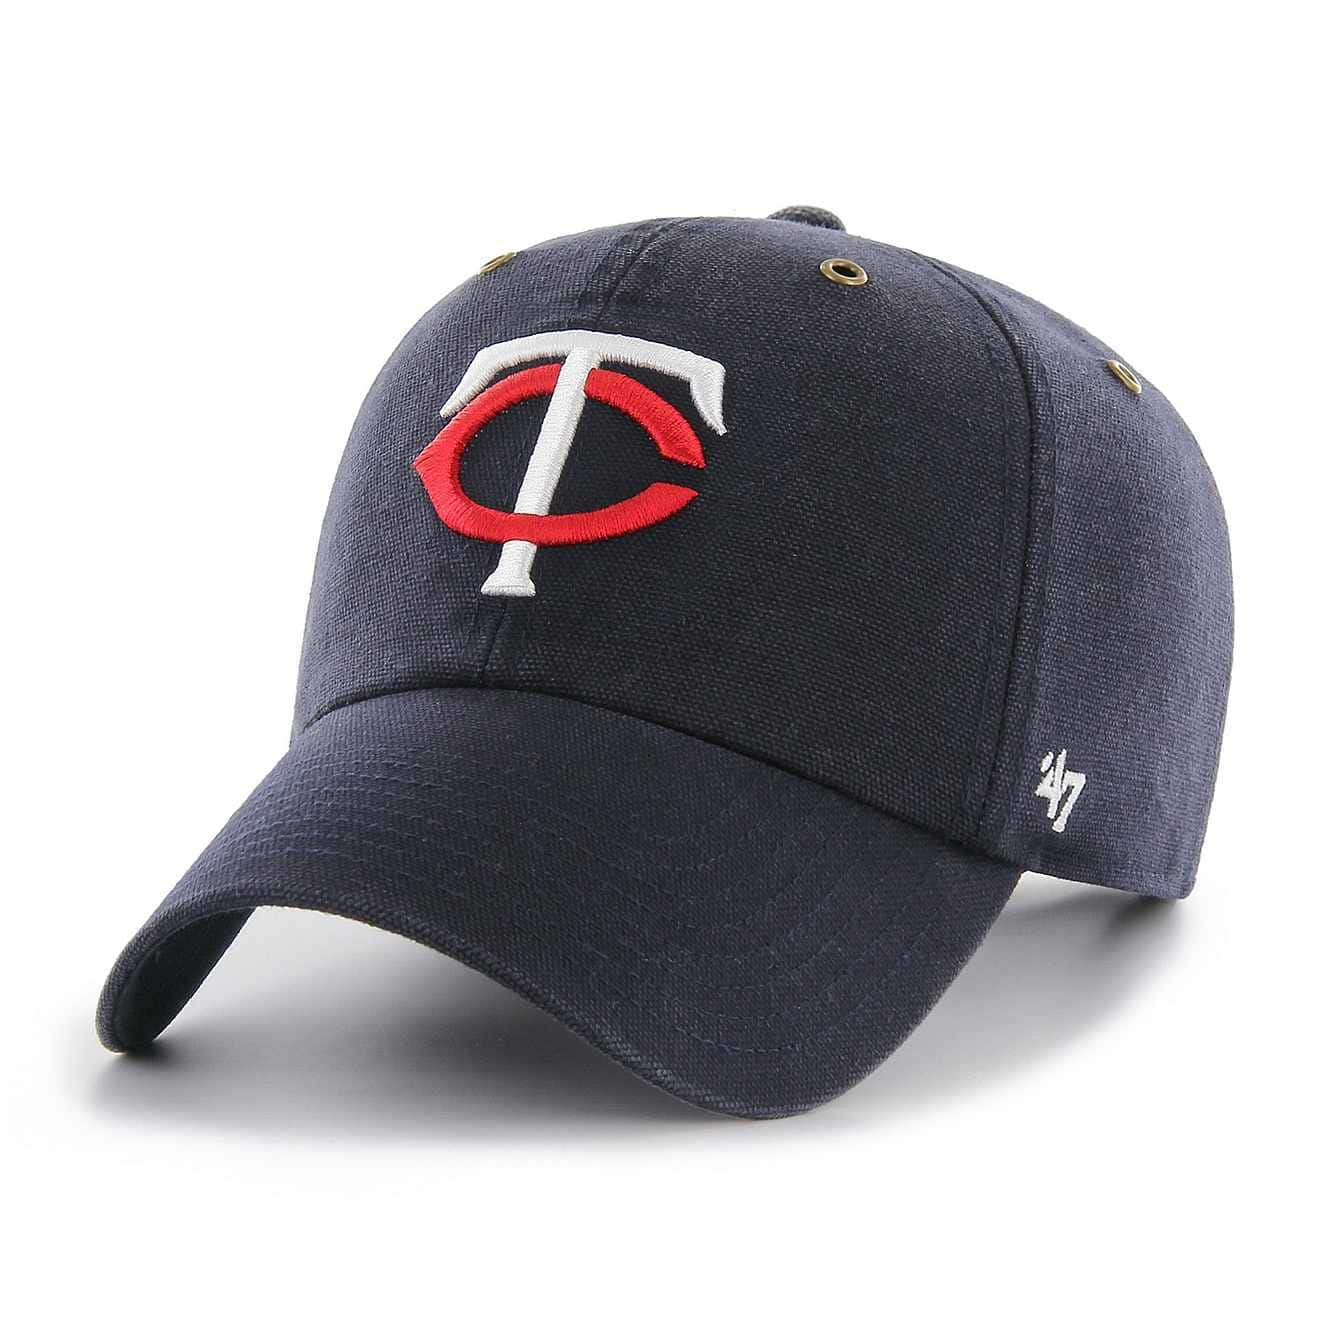 Picture of Minnesota Twins Carhartt x '47 Clean Up in Navy